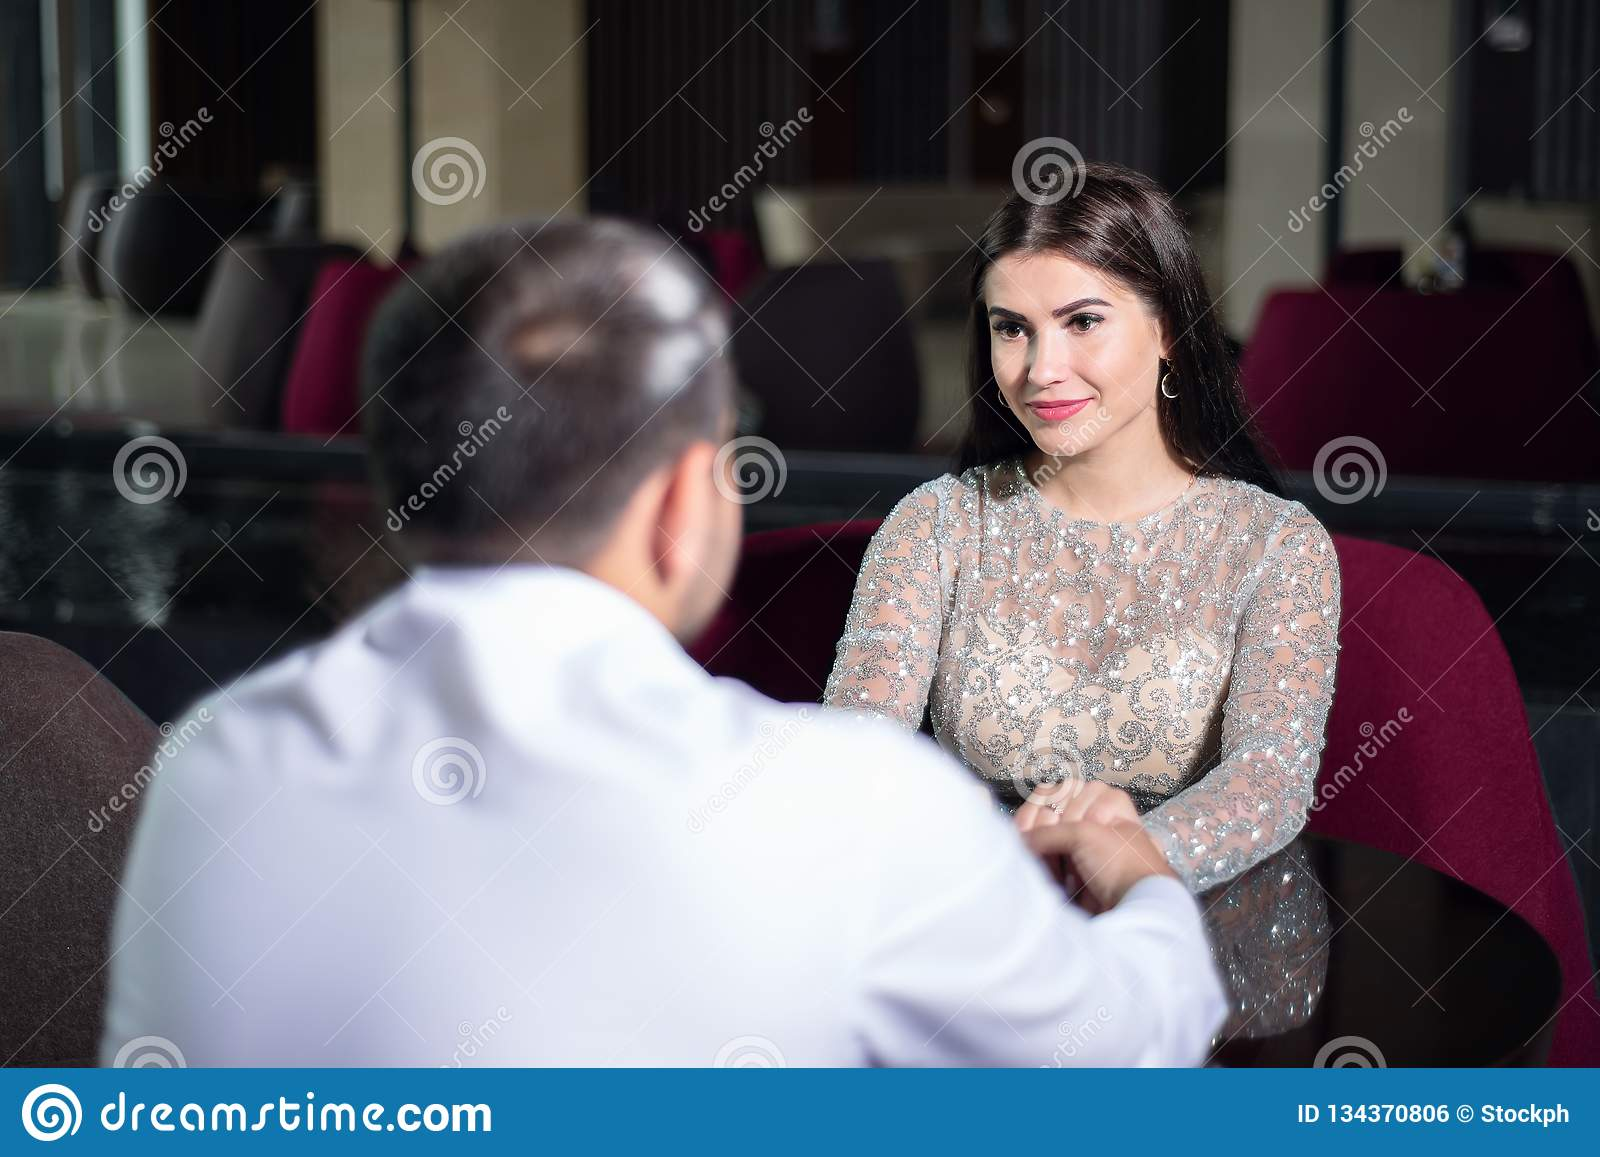 Beautiful woman in evening dress holding hands of man